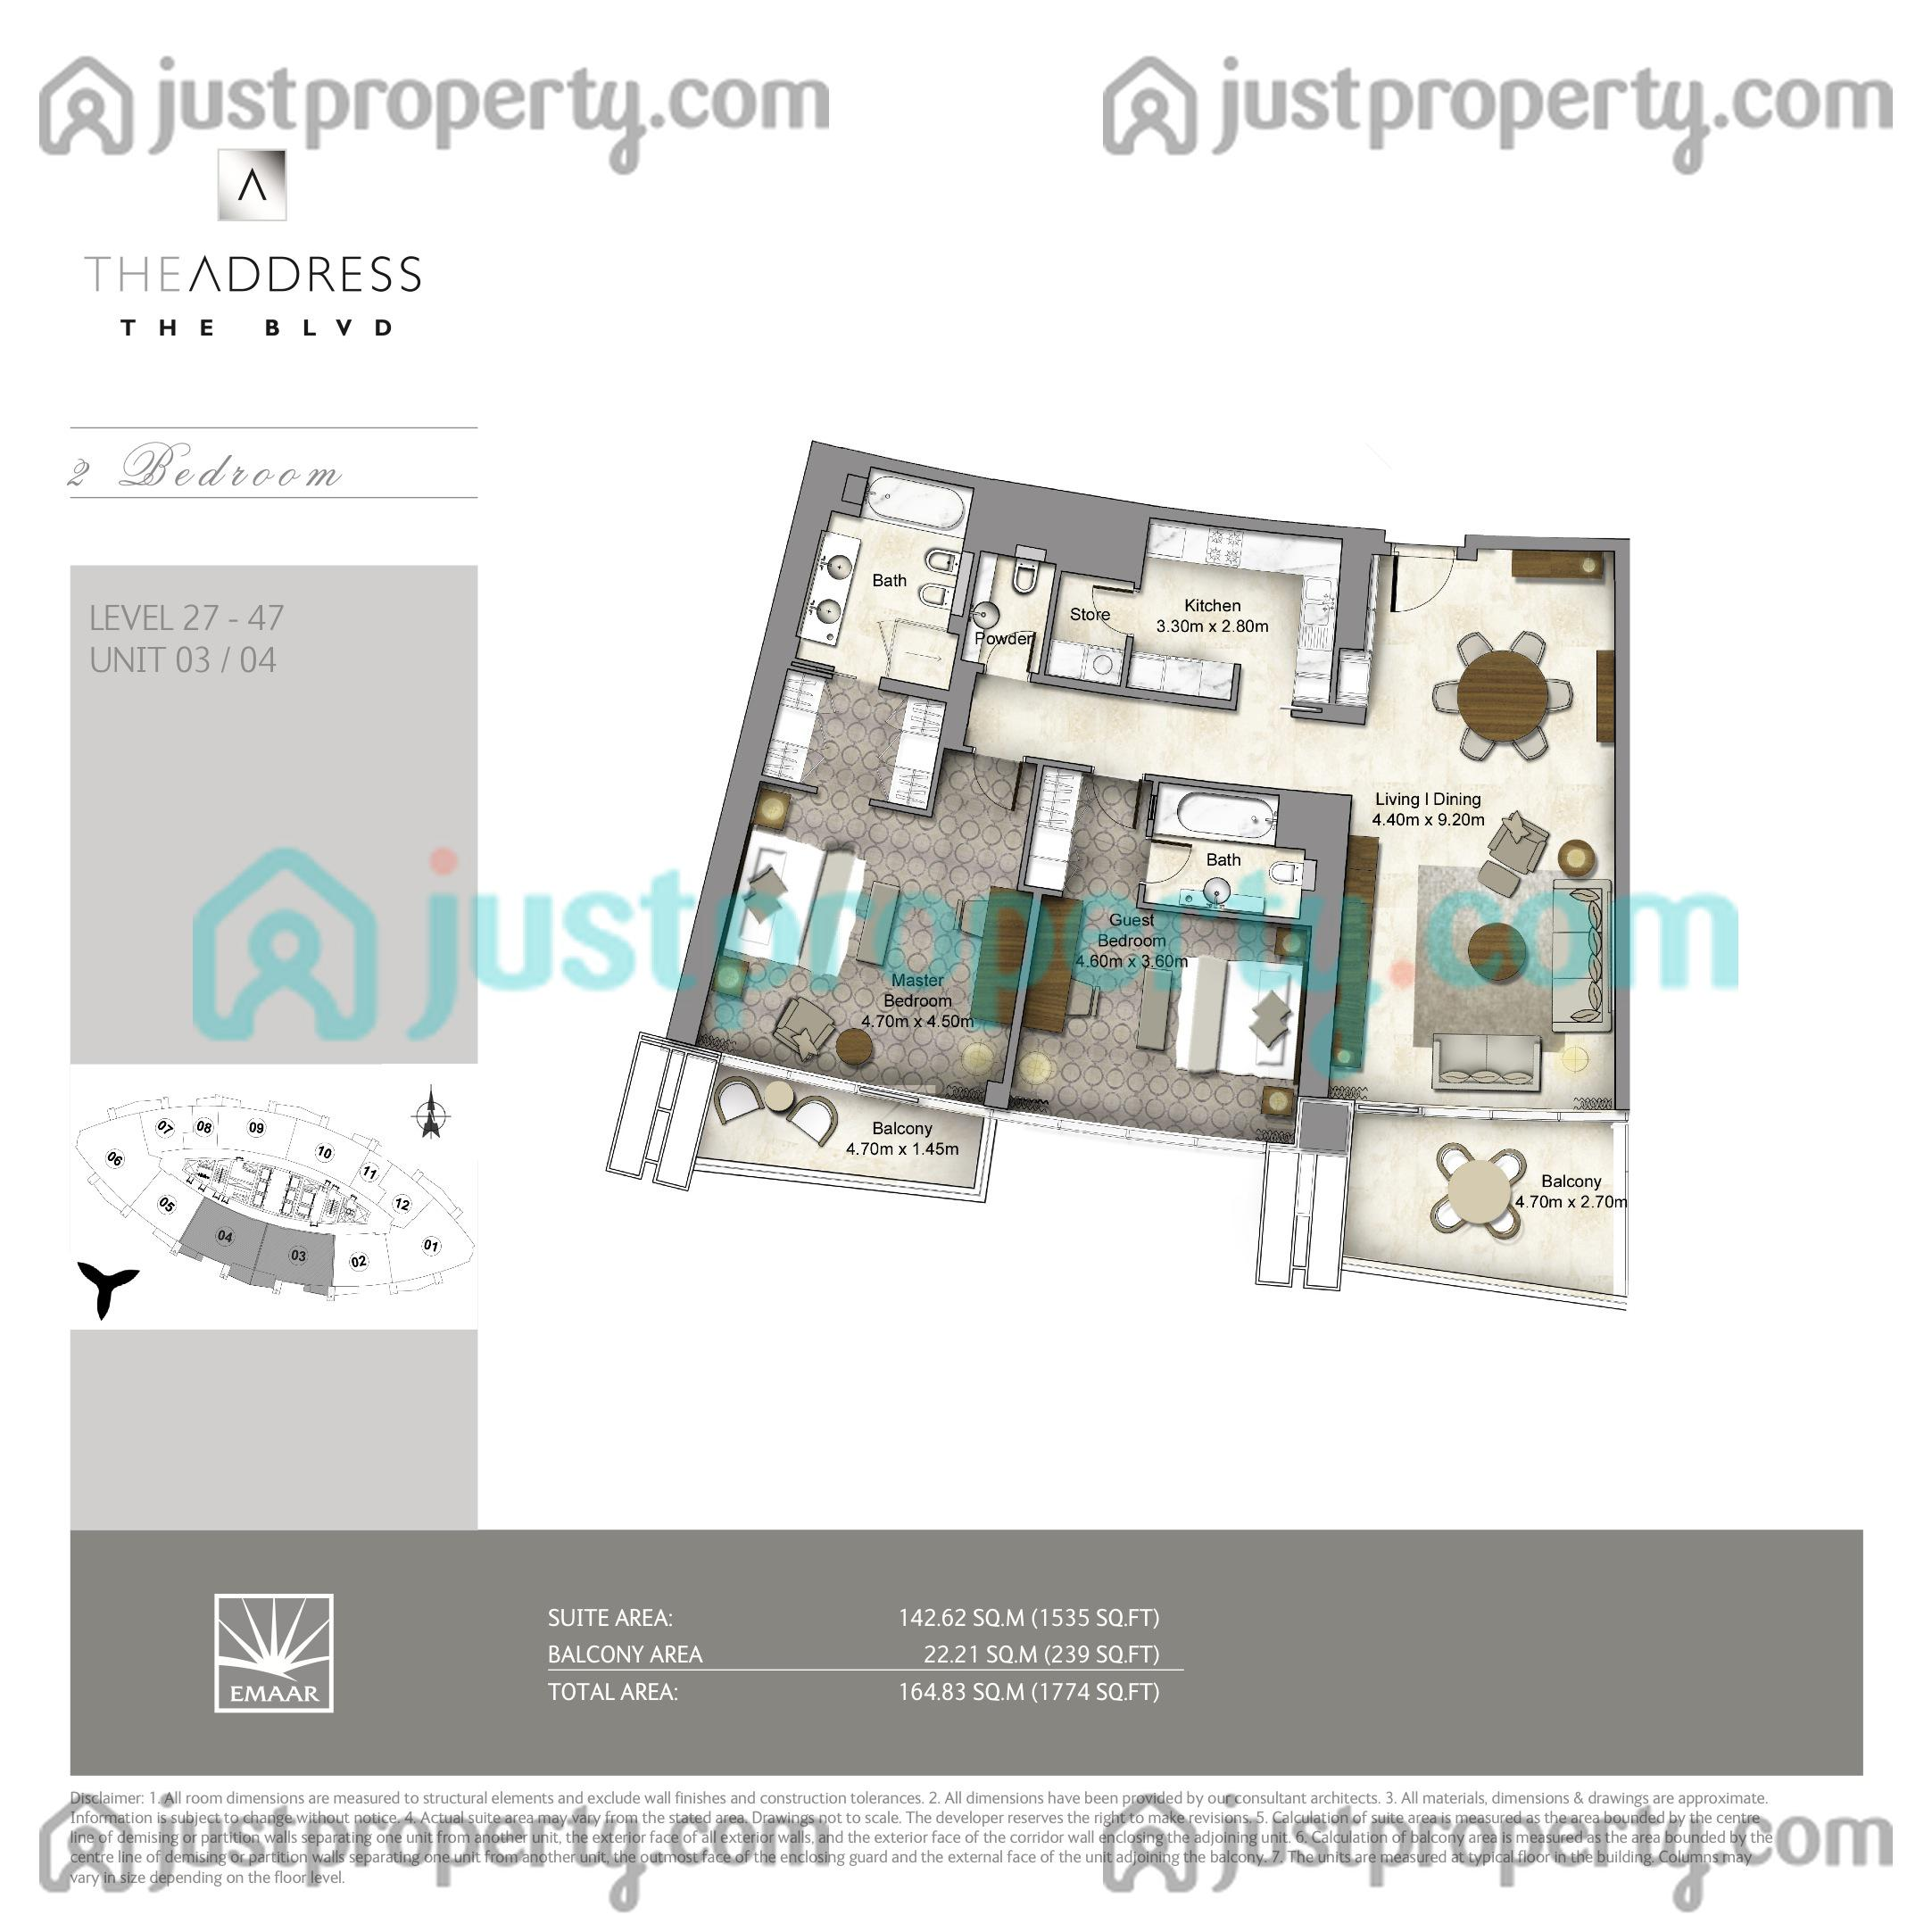 floor plans by address address the blvd floor plans justproperty 17650